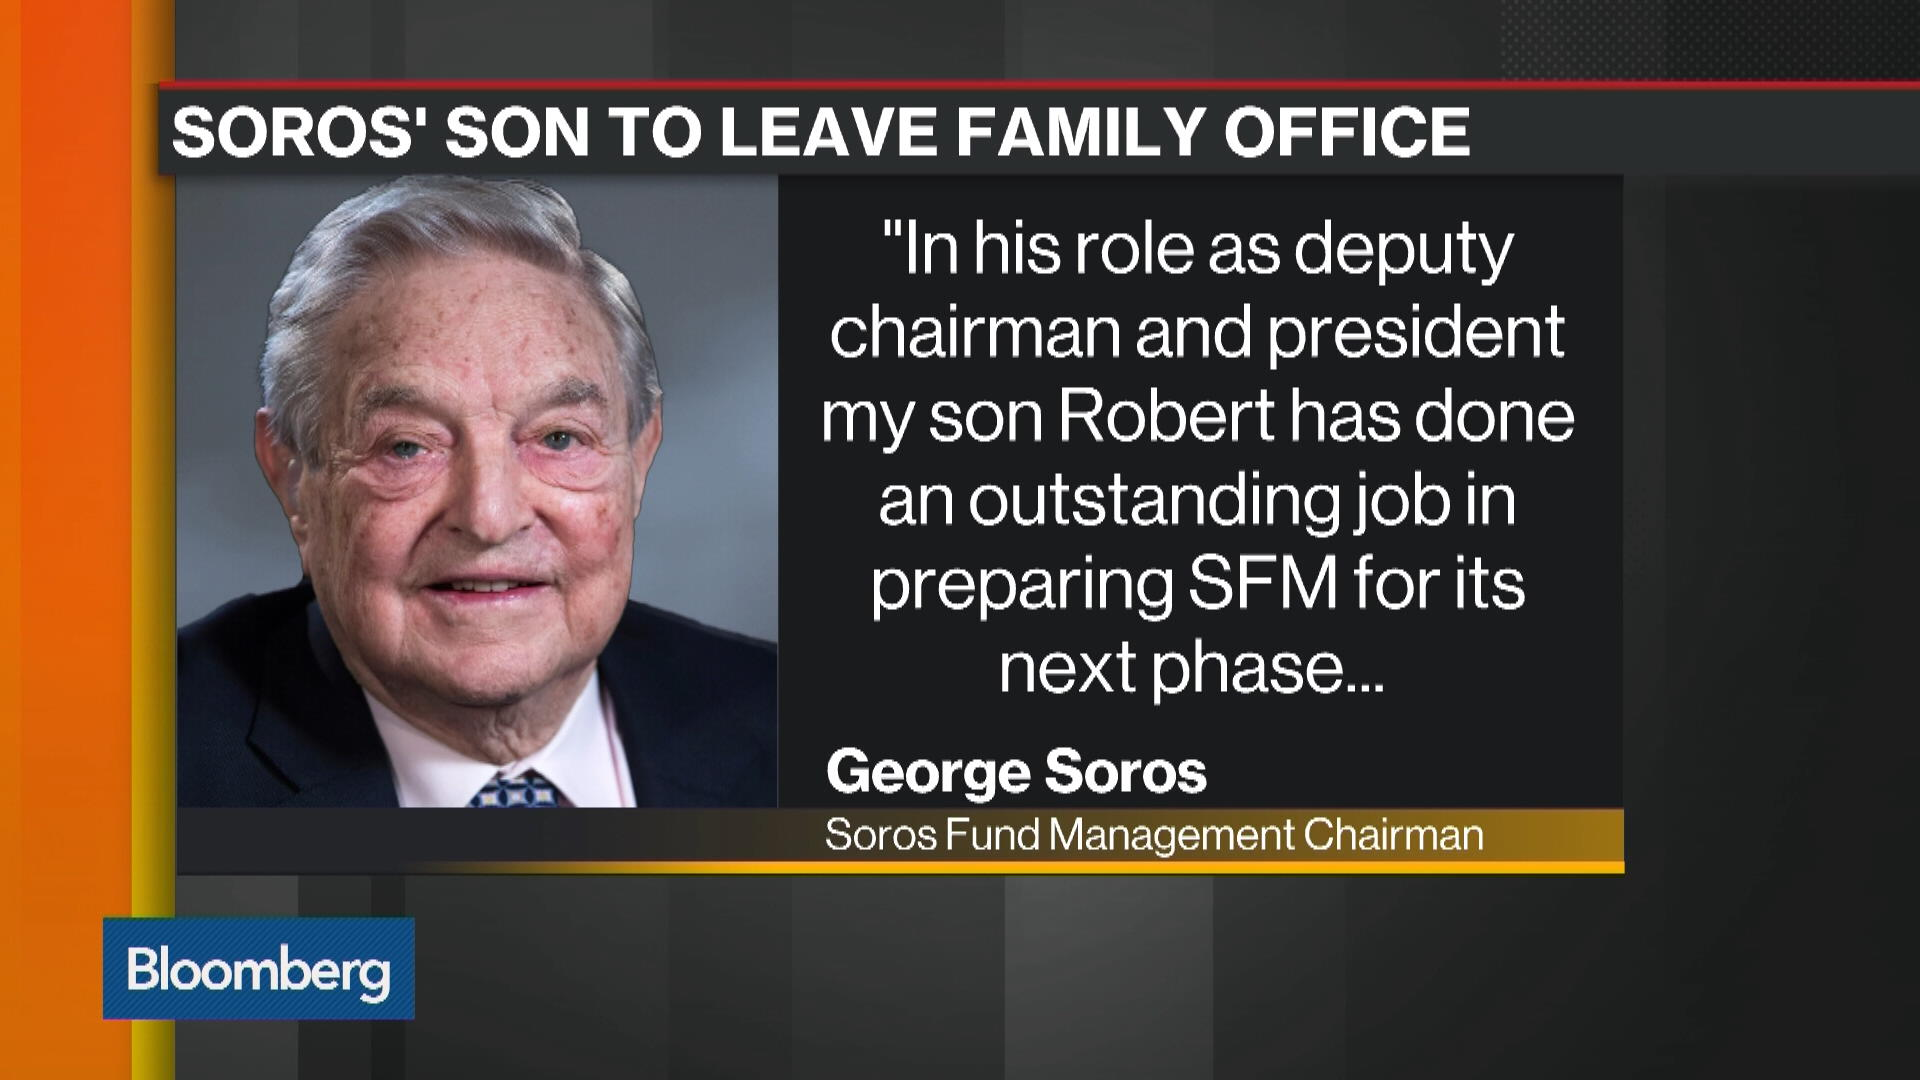 Robert Soros Is Stepping Down as President of Soros Family Office